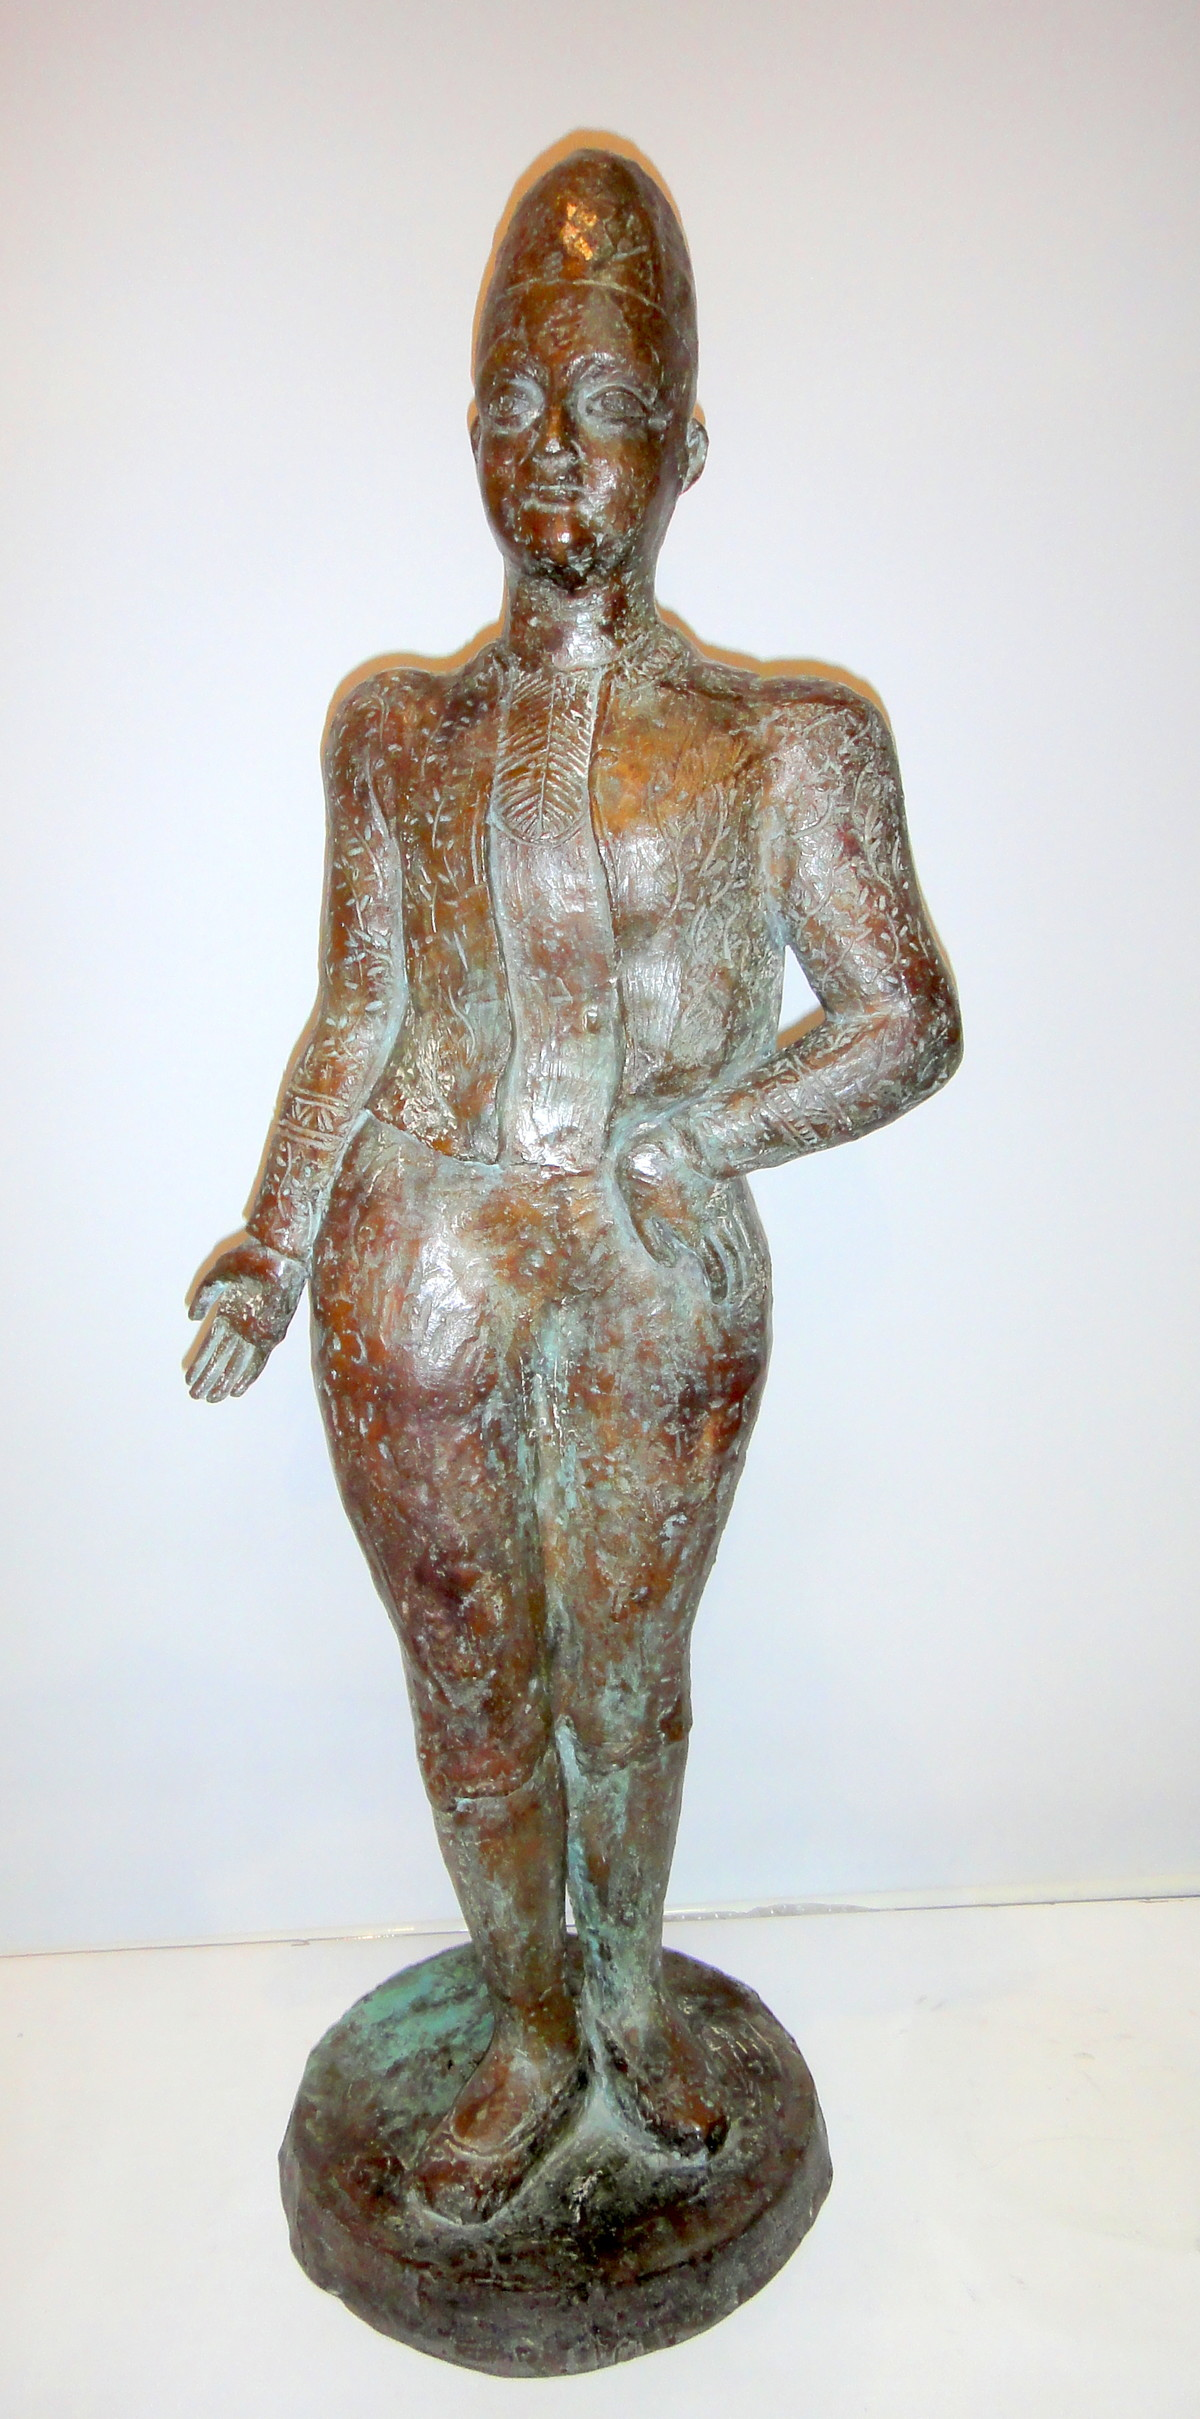 Onlooker by Sakti Burman, Art Deco Sculpture, Bronze, Gray color